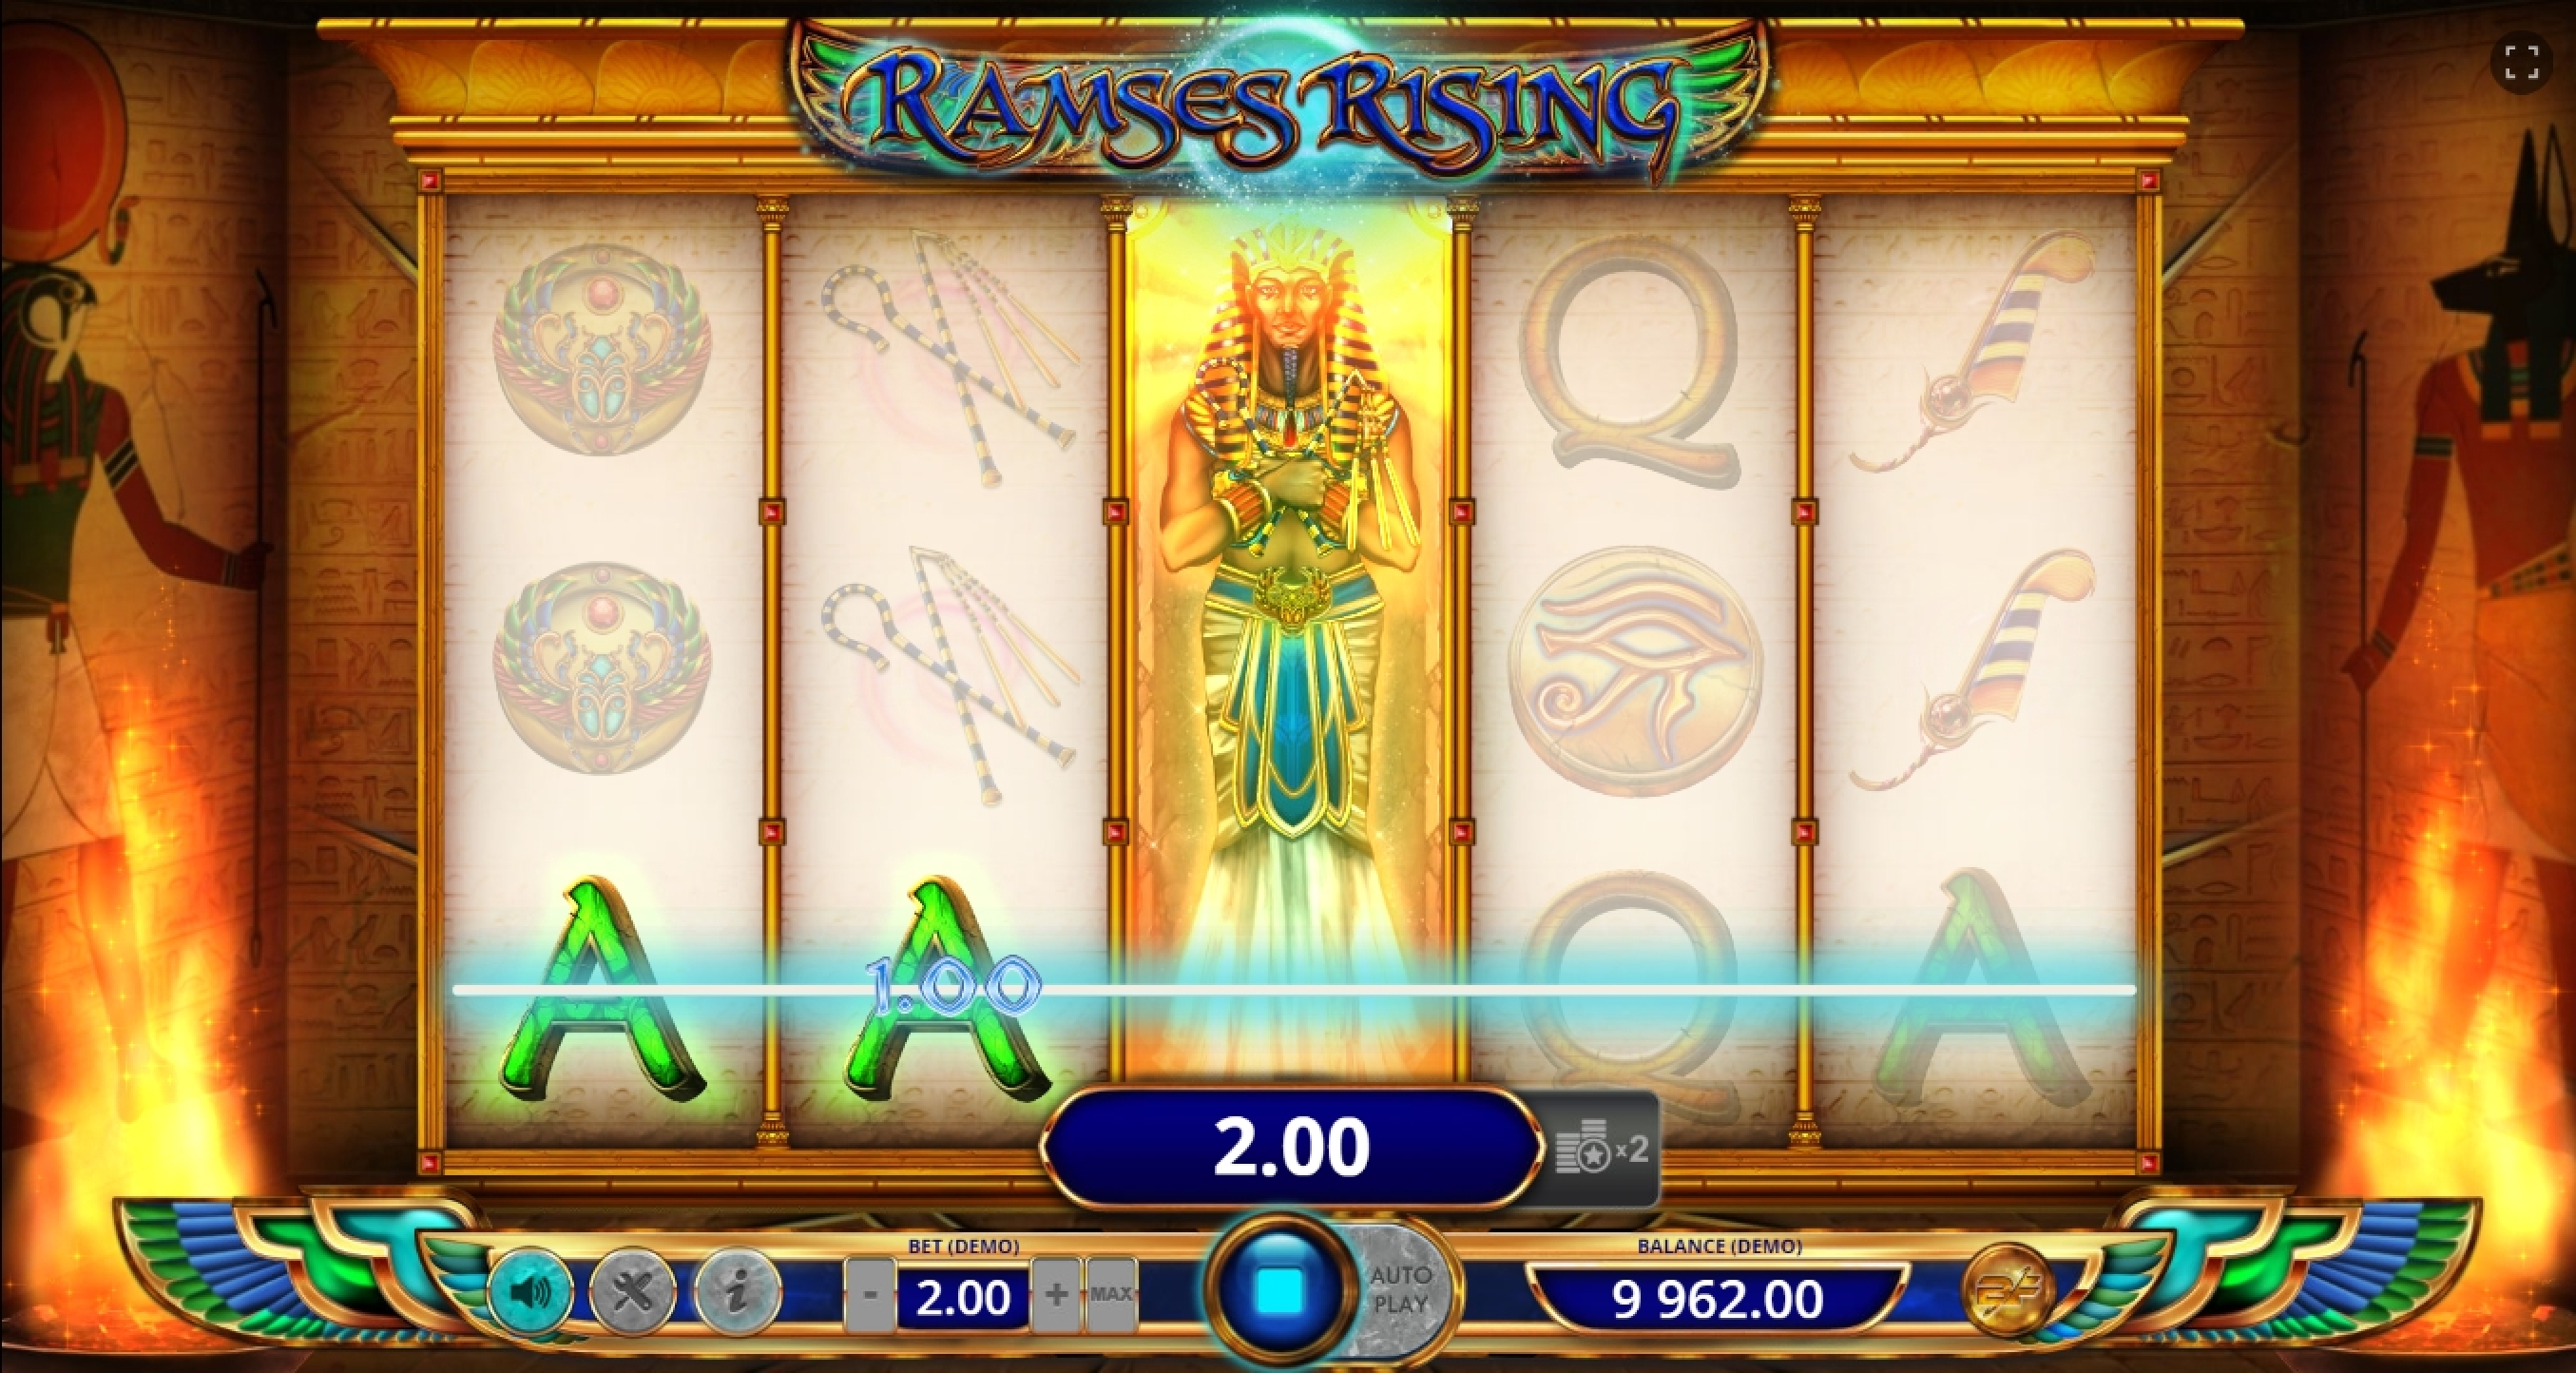 Win Money in Ramses Rising Free Slot Game by BF games